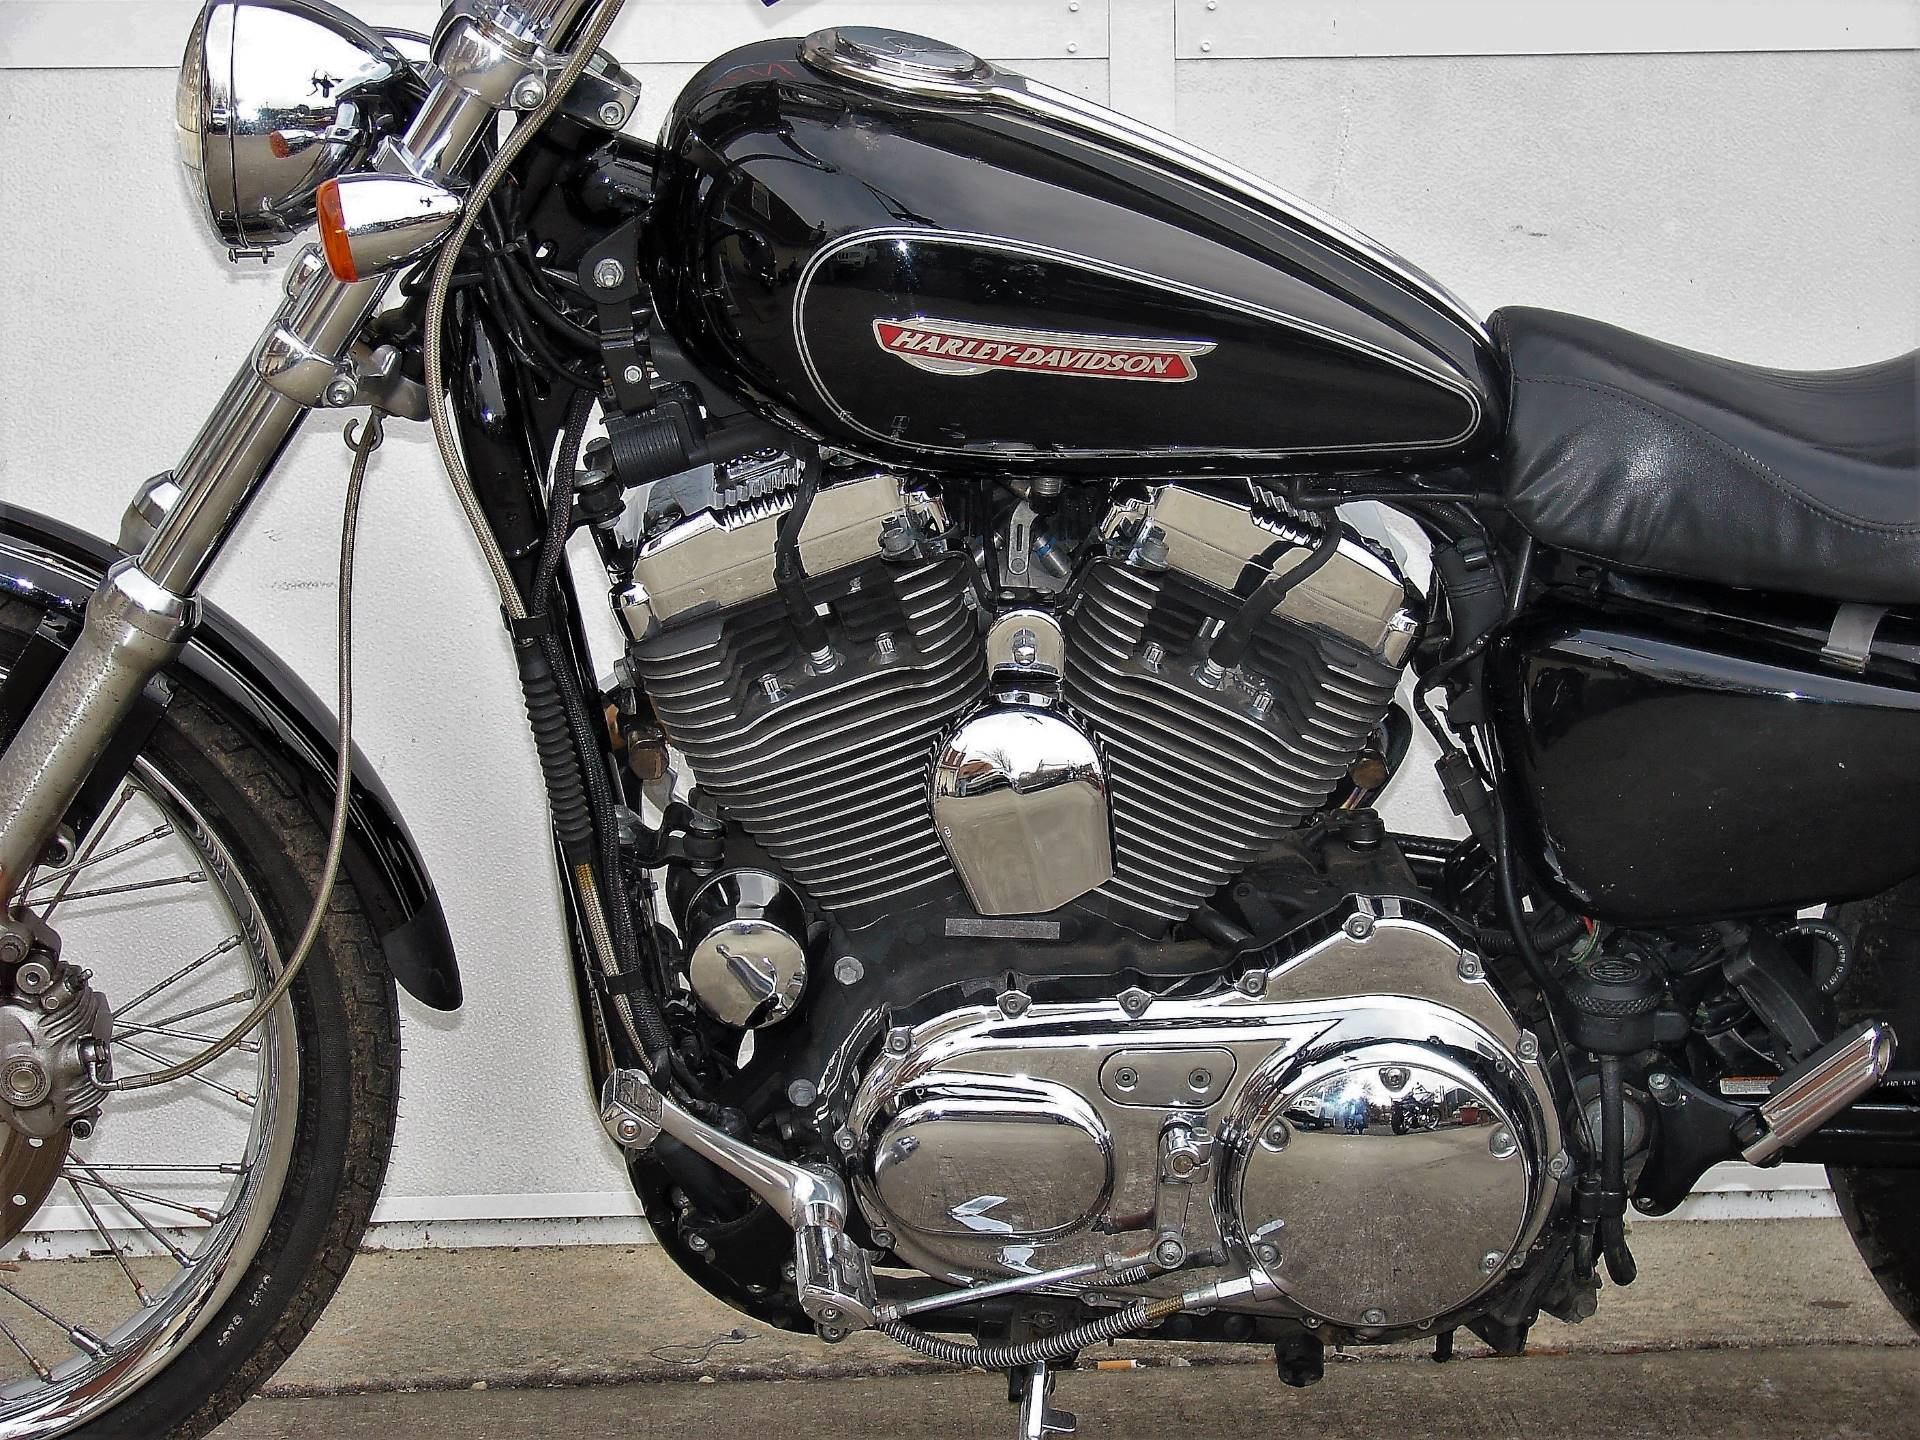 2008 Harley-Davidson 1200cc Sportster  (Black with Silver Pinstripe) in Williamstown, New Jersey - Photo 14